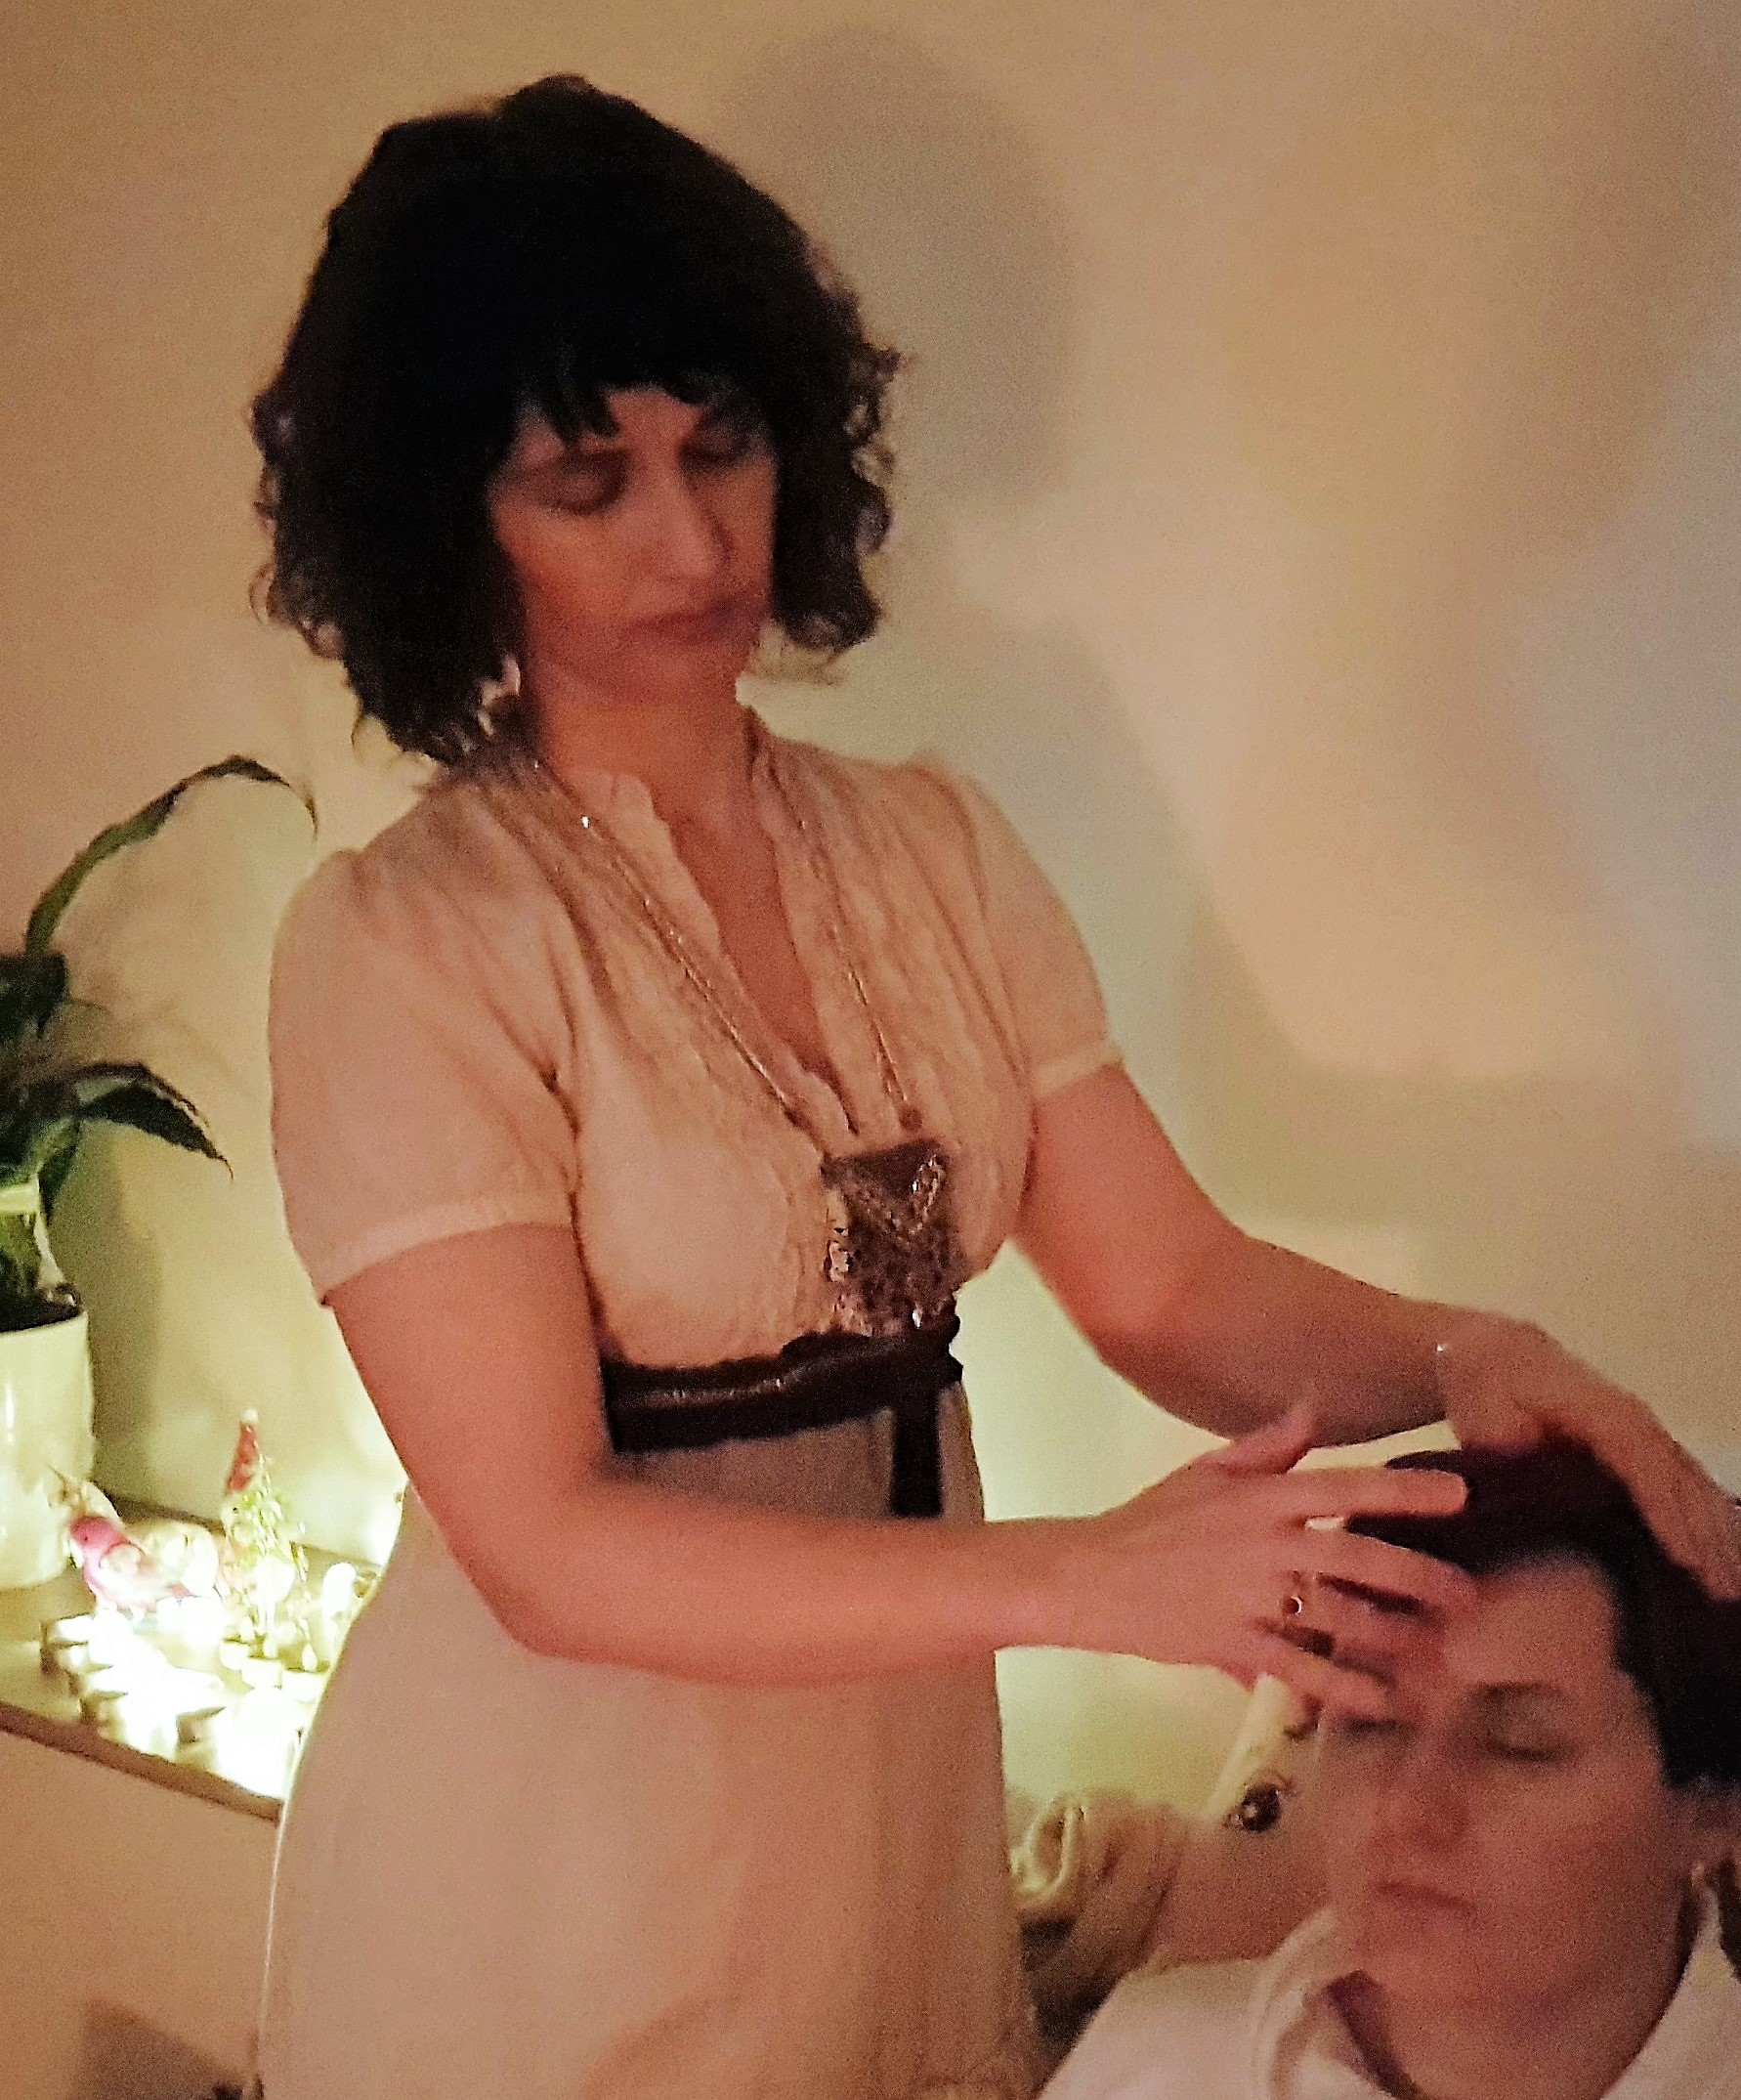 DEVI DELIVERING MOHANJI ENERGY TRANSFER DURING POWER OF PURITY MEDITATION IN ST. ANA, SLOVENIA, JANUARY 2019